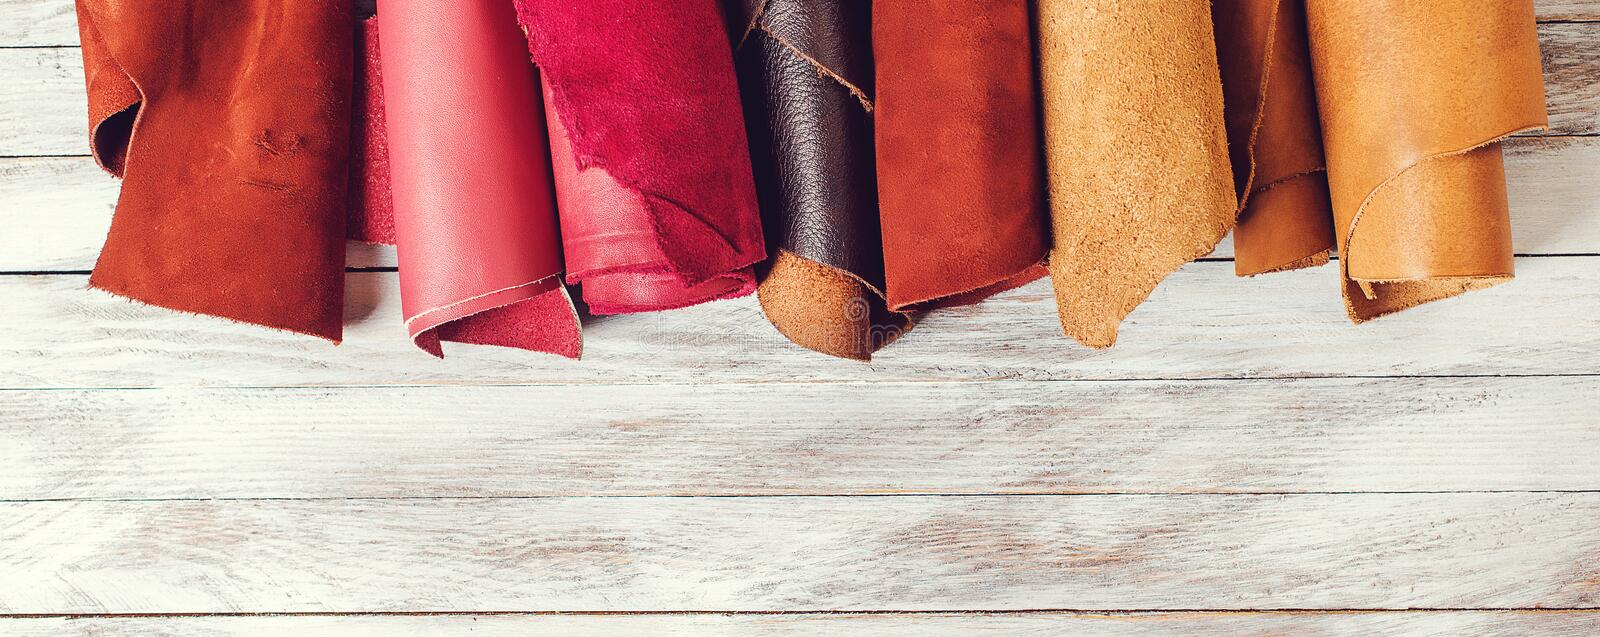 Rolls of natural color leather. Materials for leather craft. Copy space. Multi colored leather in rolls. Top view. Handmade craft. royalty free stock photos